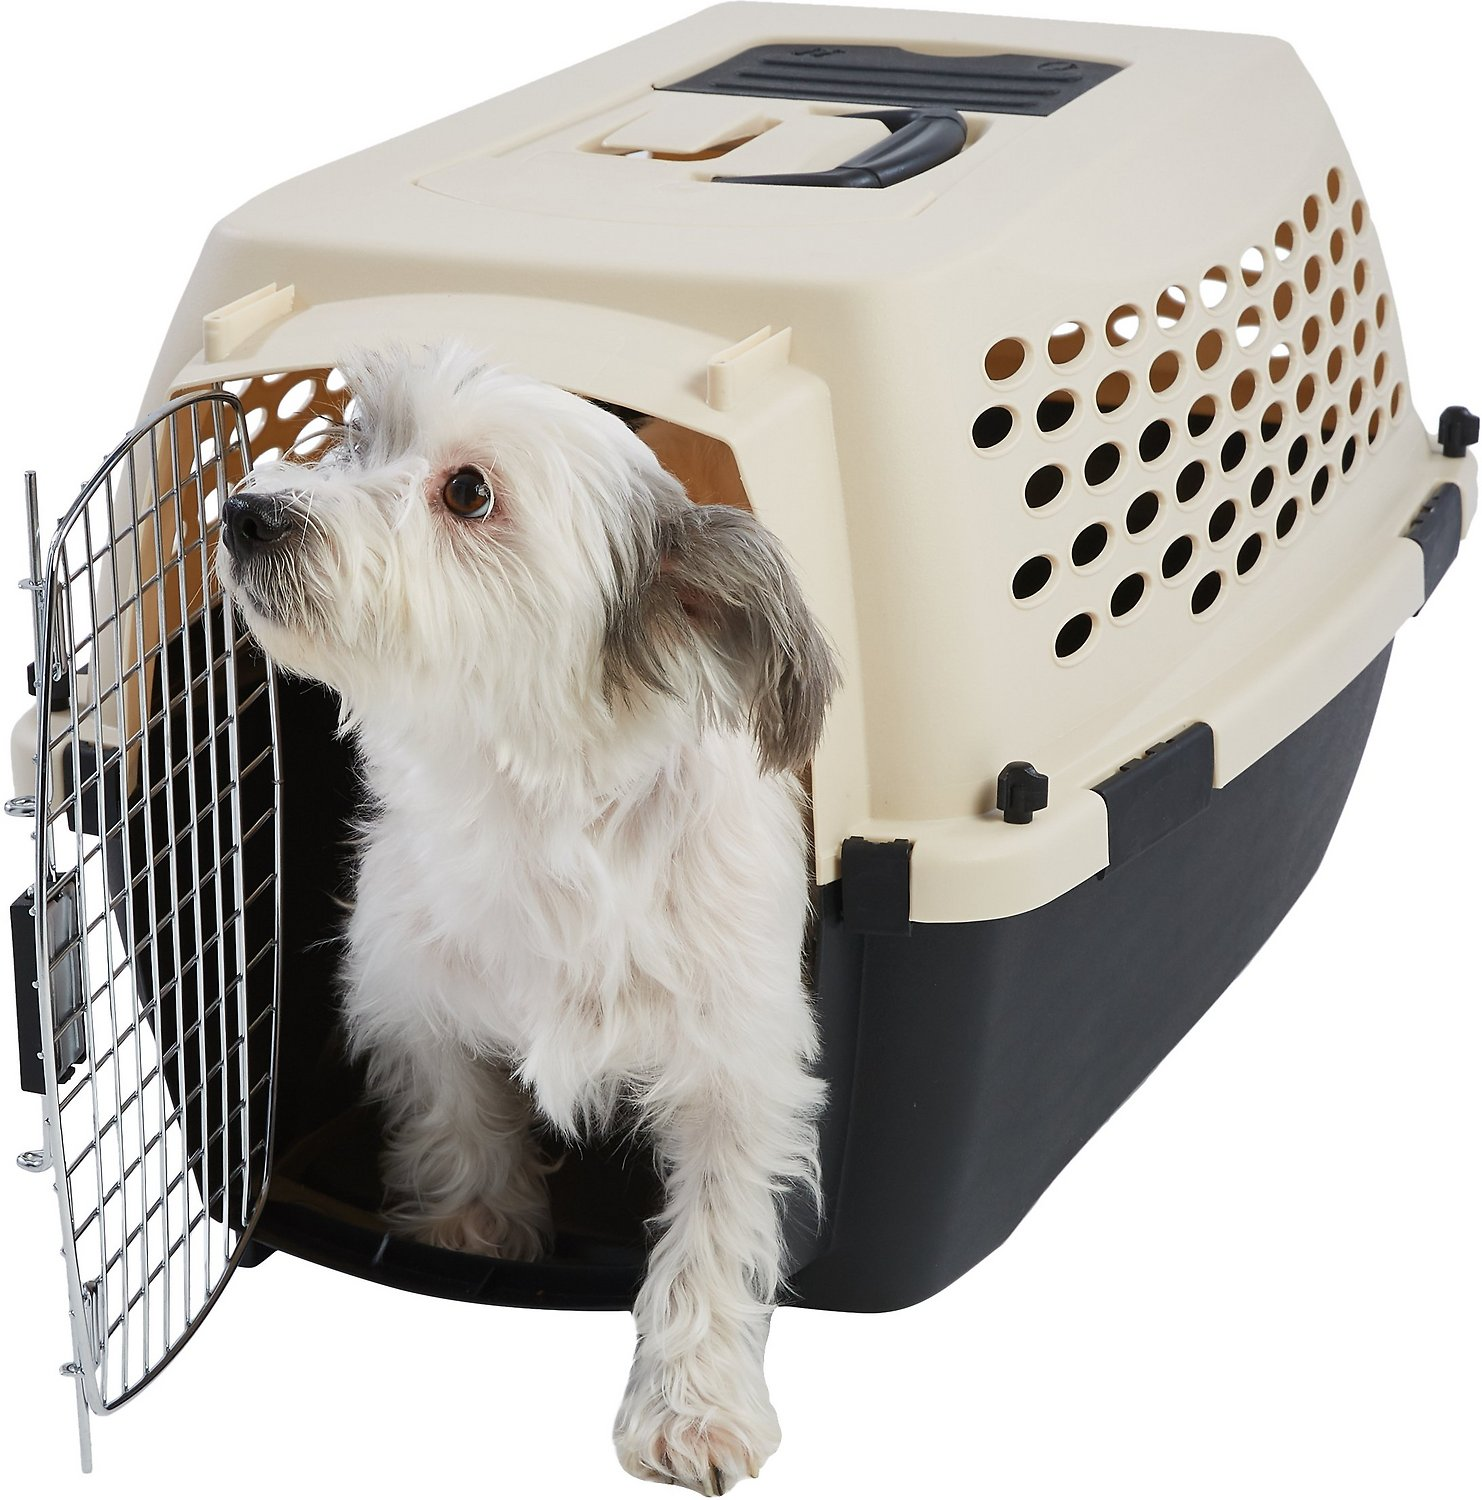 NEW Petmate Sky Kennel for Pets from 25 to 30 Pound Light Gray FREE SHIPPING